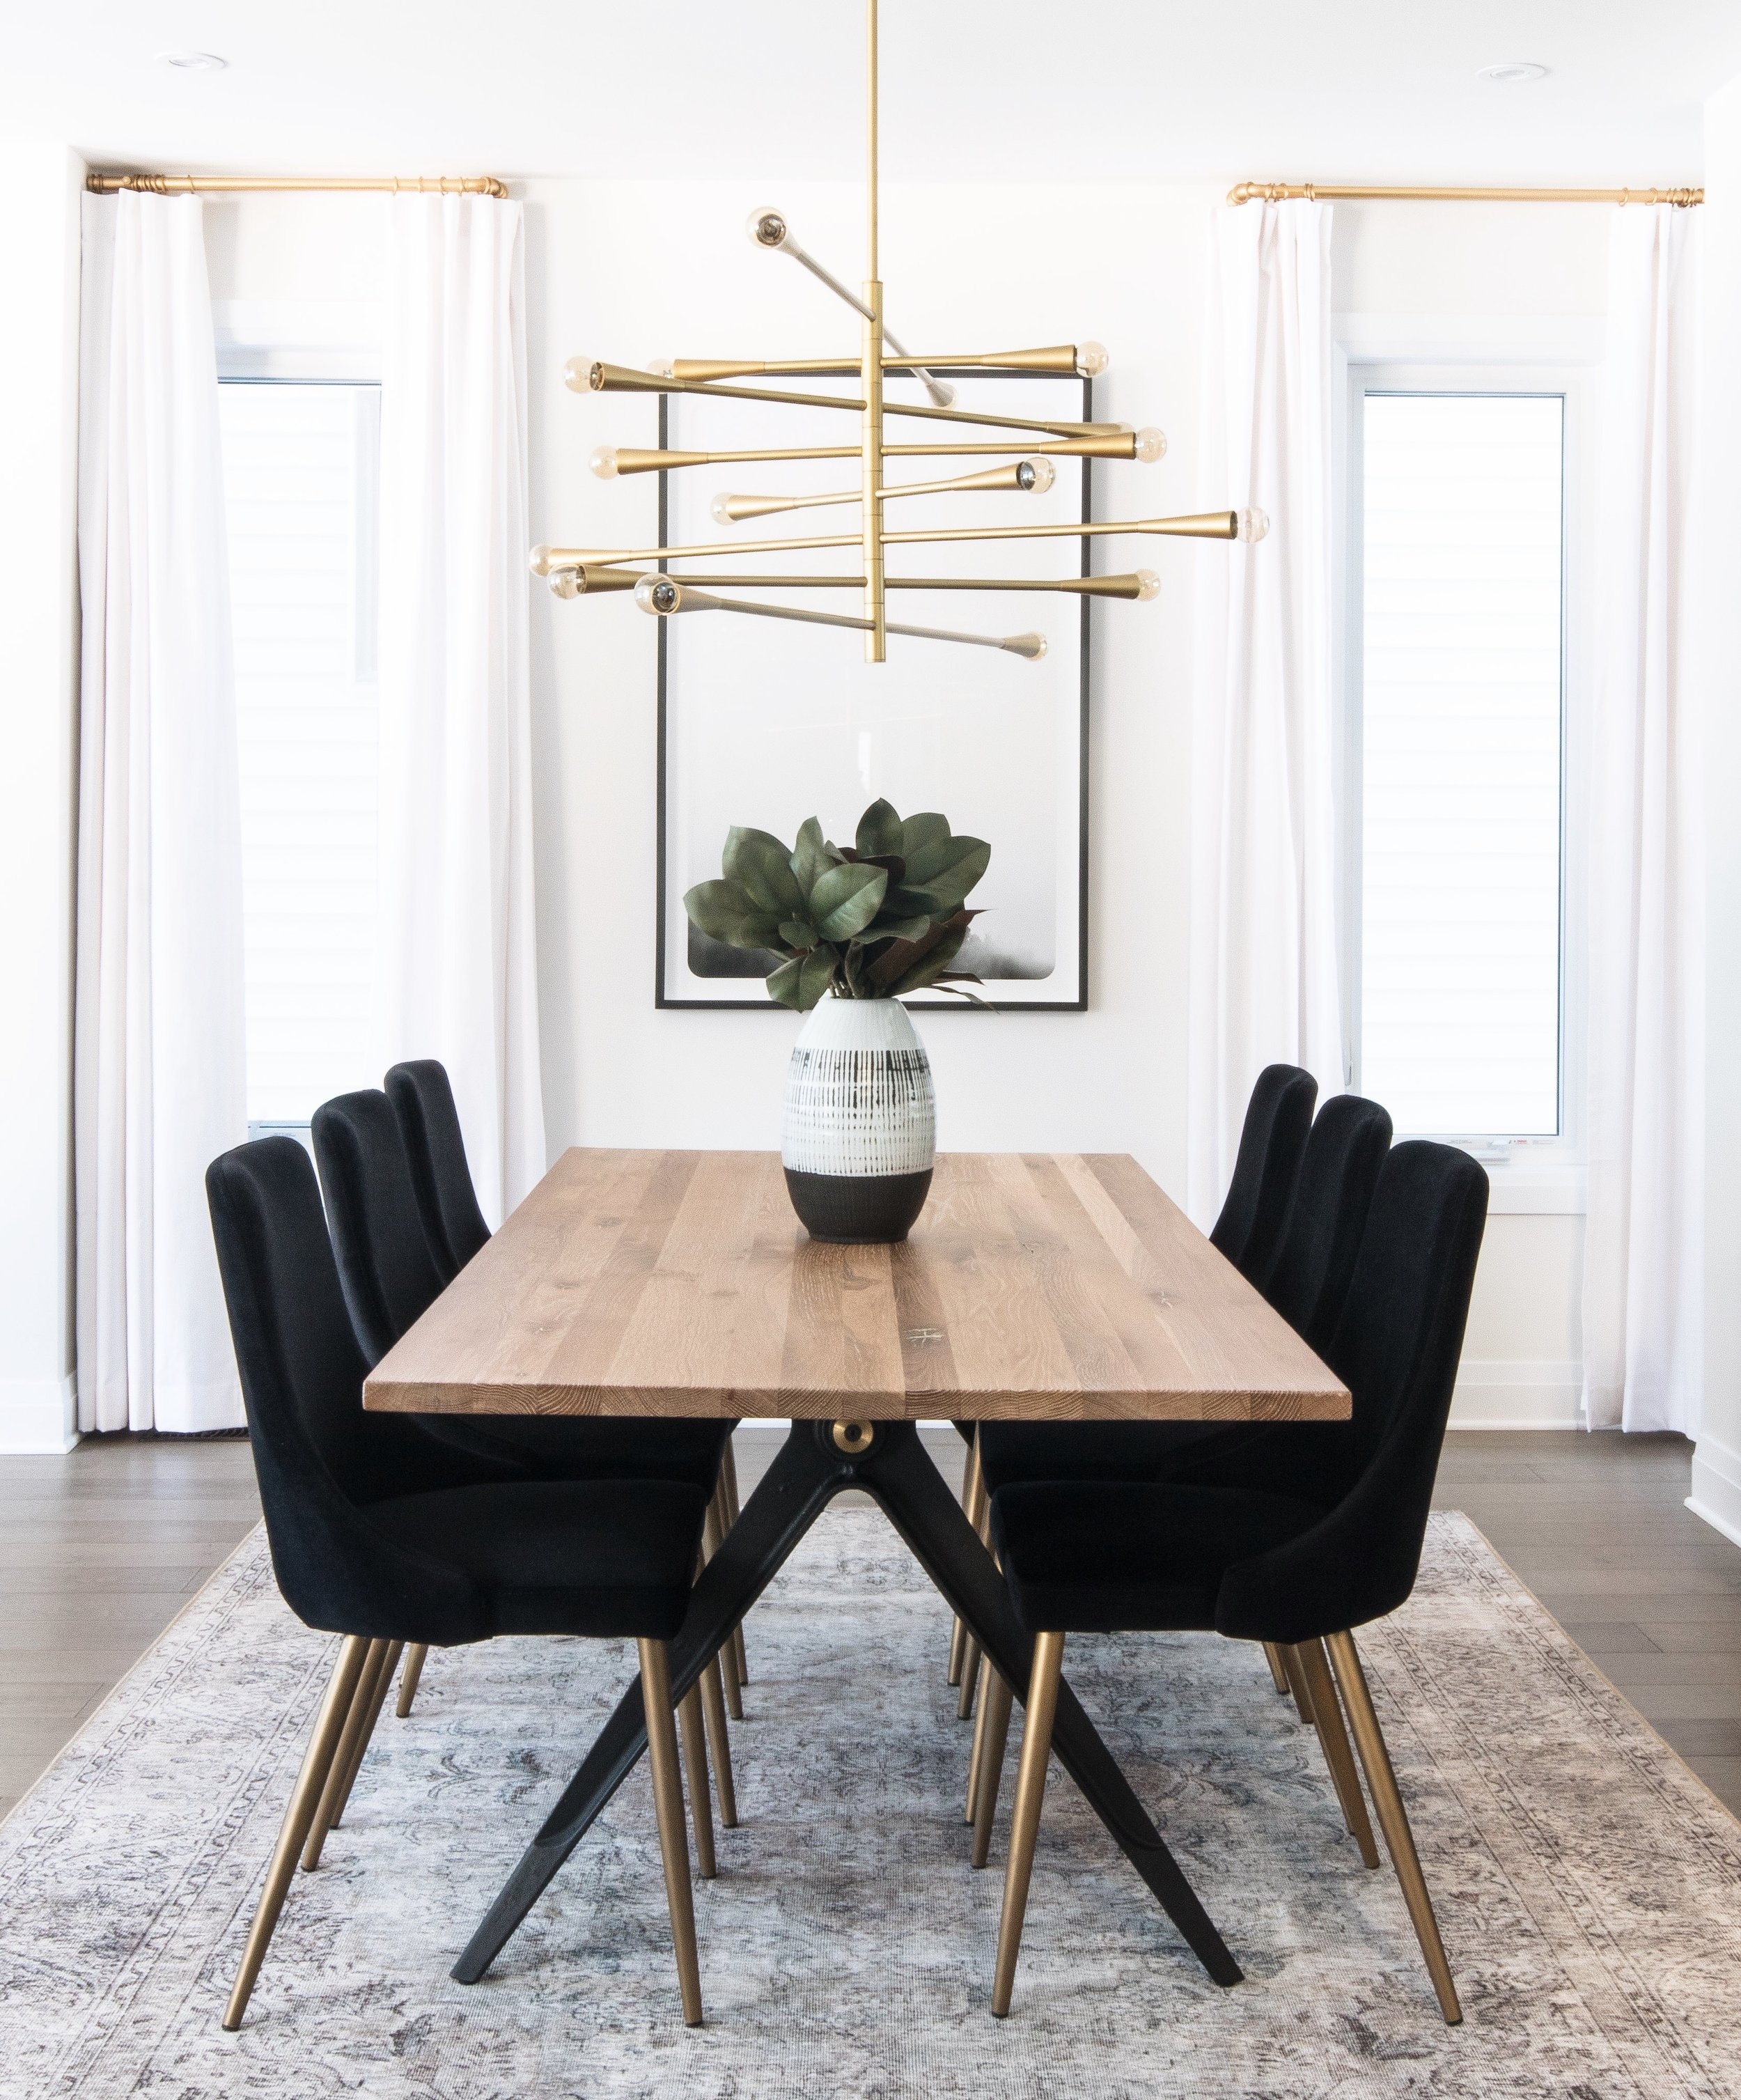 Modern and inviting formal dining space by Ottawa interior design firm Leclair Decor.